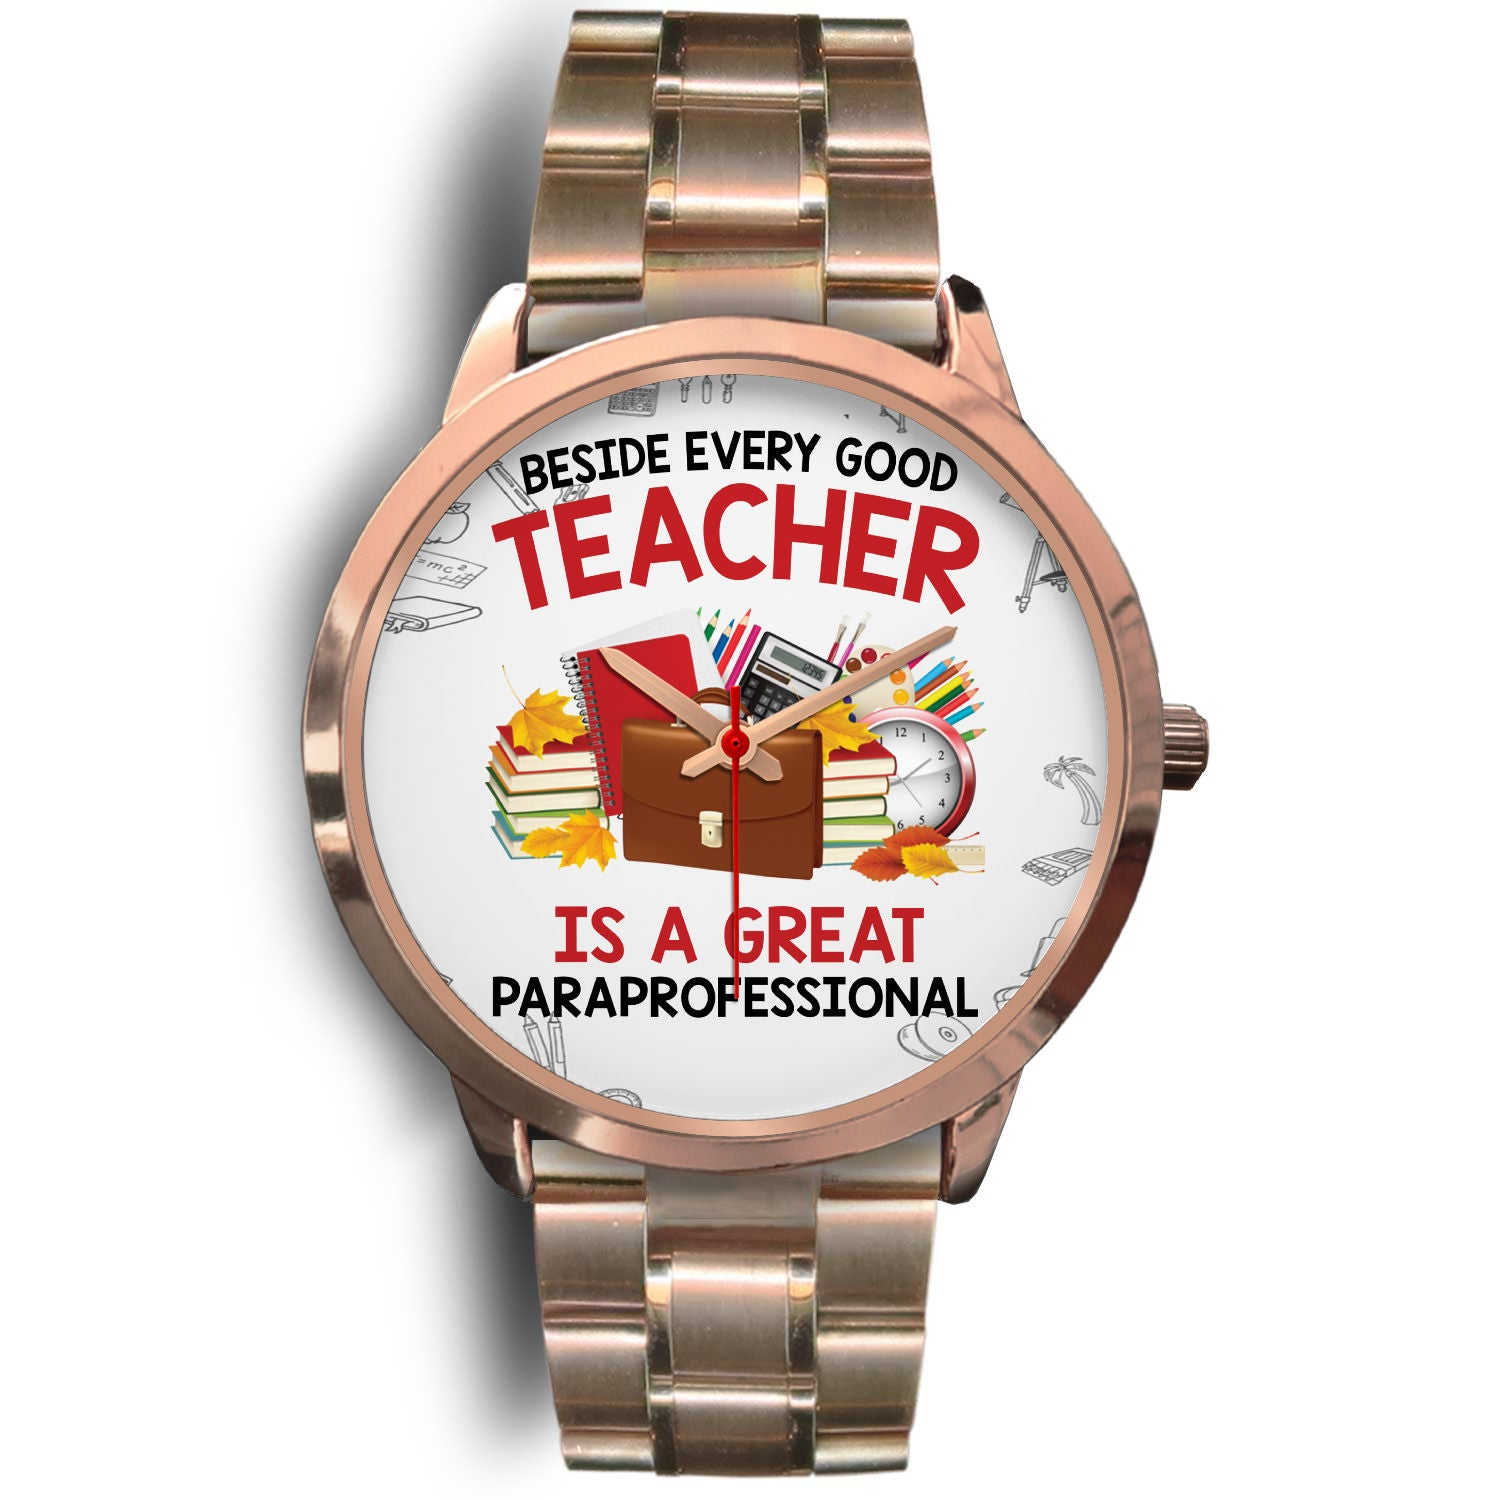 VIRA rose gold stainless steel watch for awesome teachers & papaprofessionals